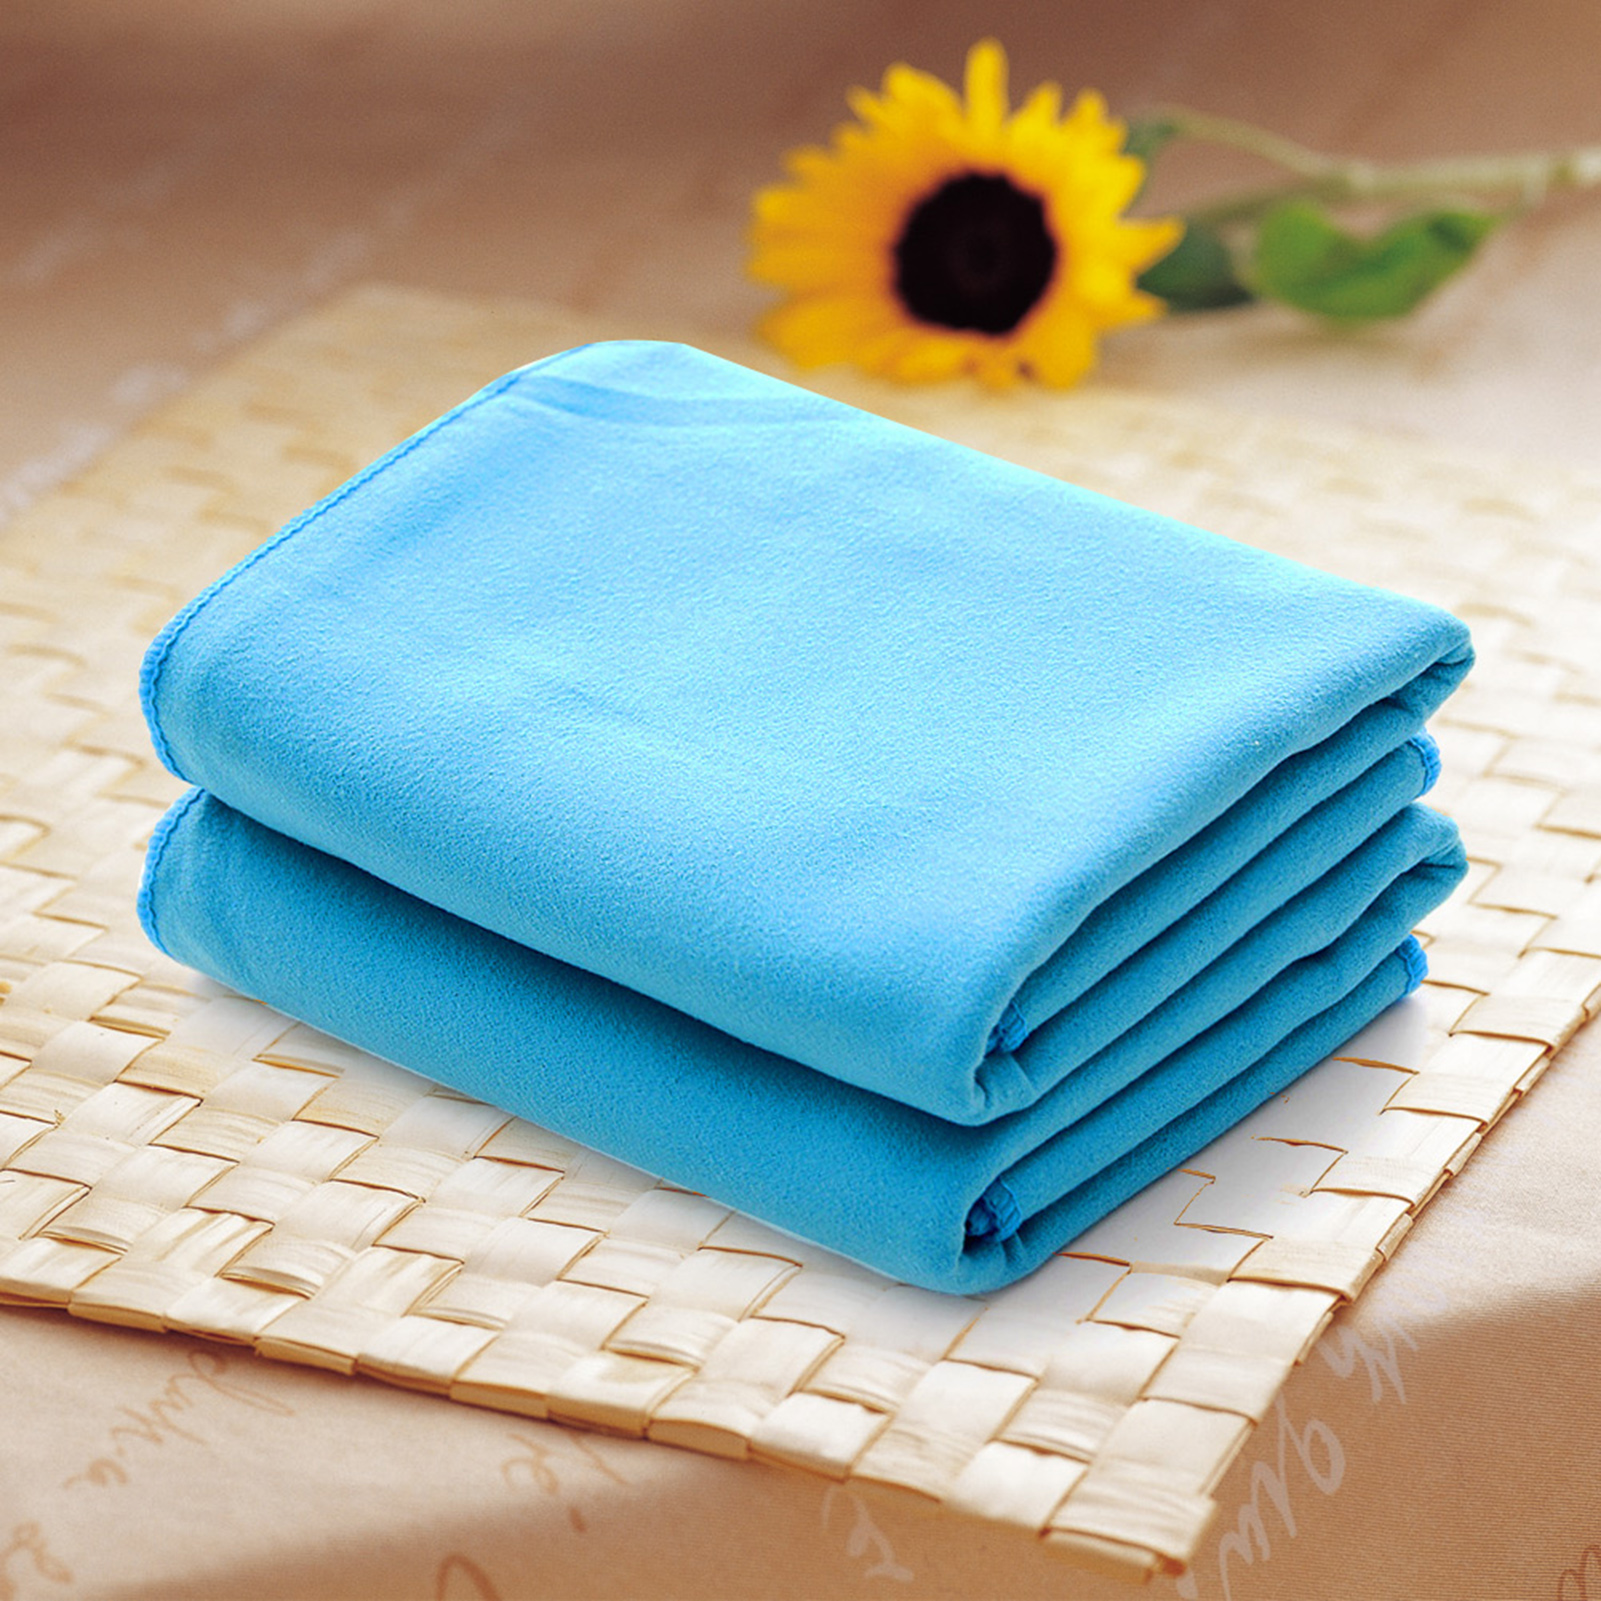 Zip Soft Microfiber Towel: Soft Microfiber Towel Sports Bath Gym Quick Dry Travel